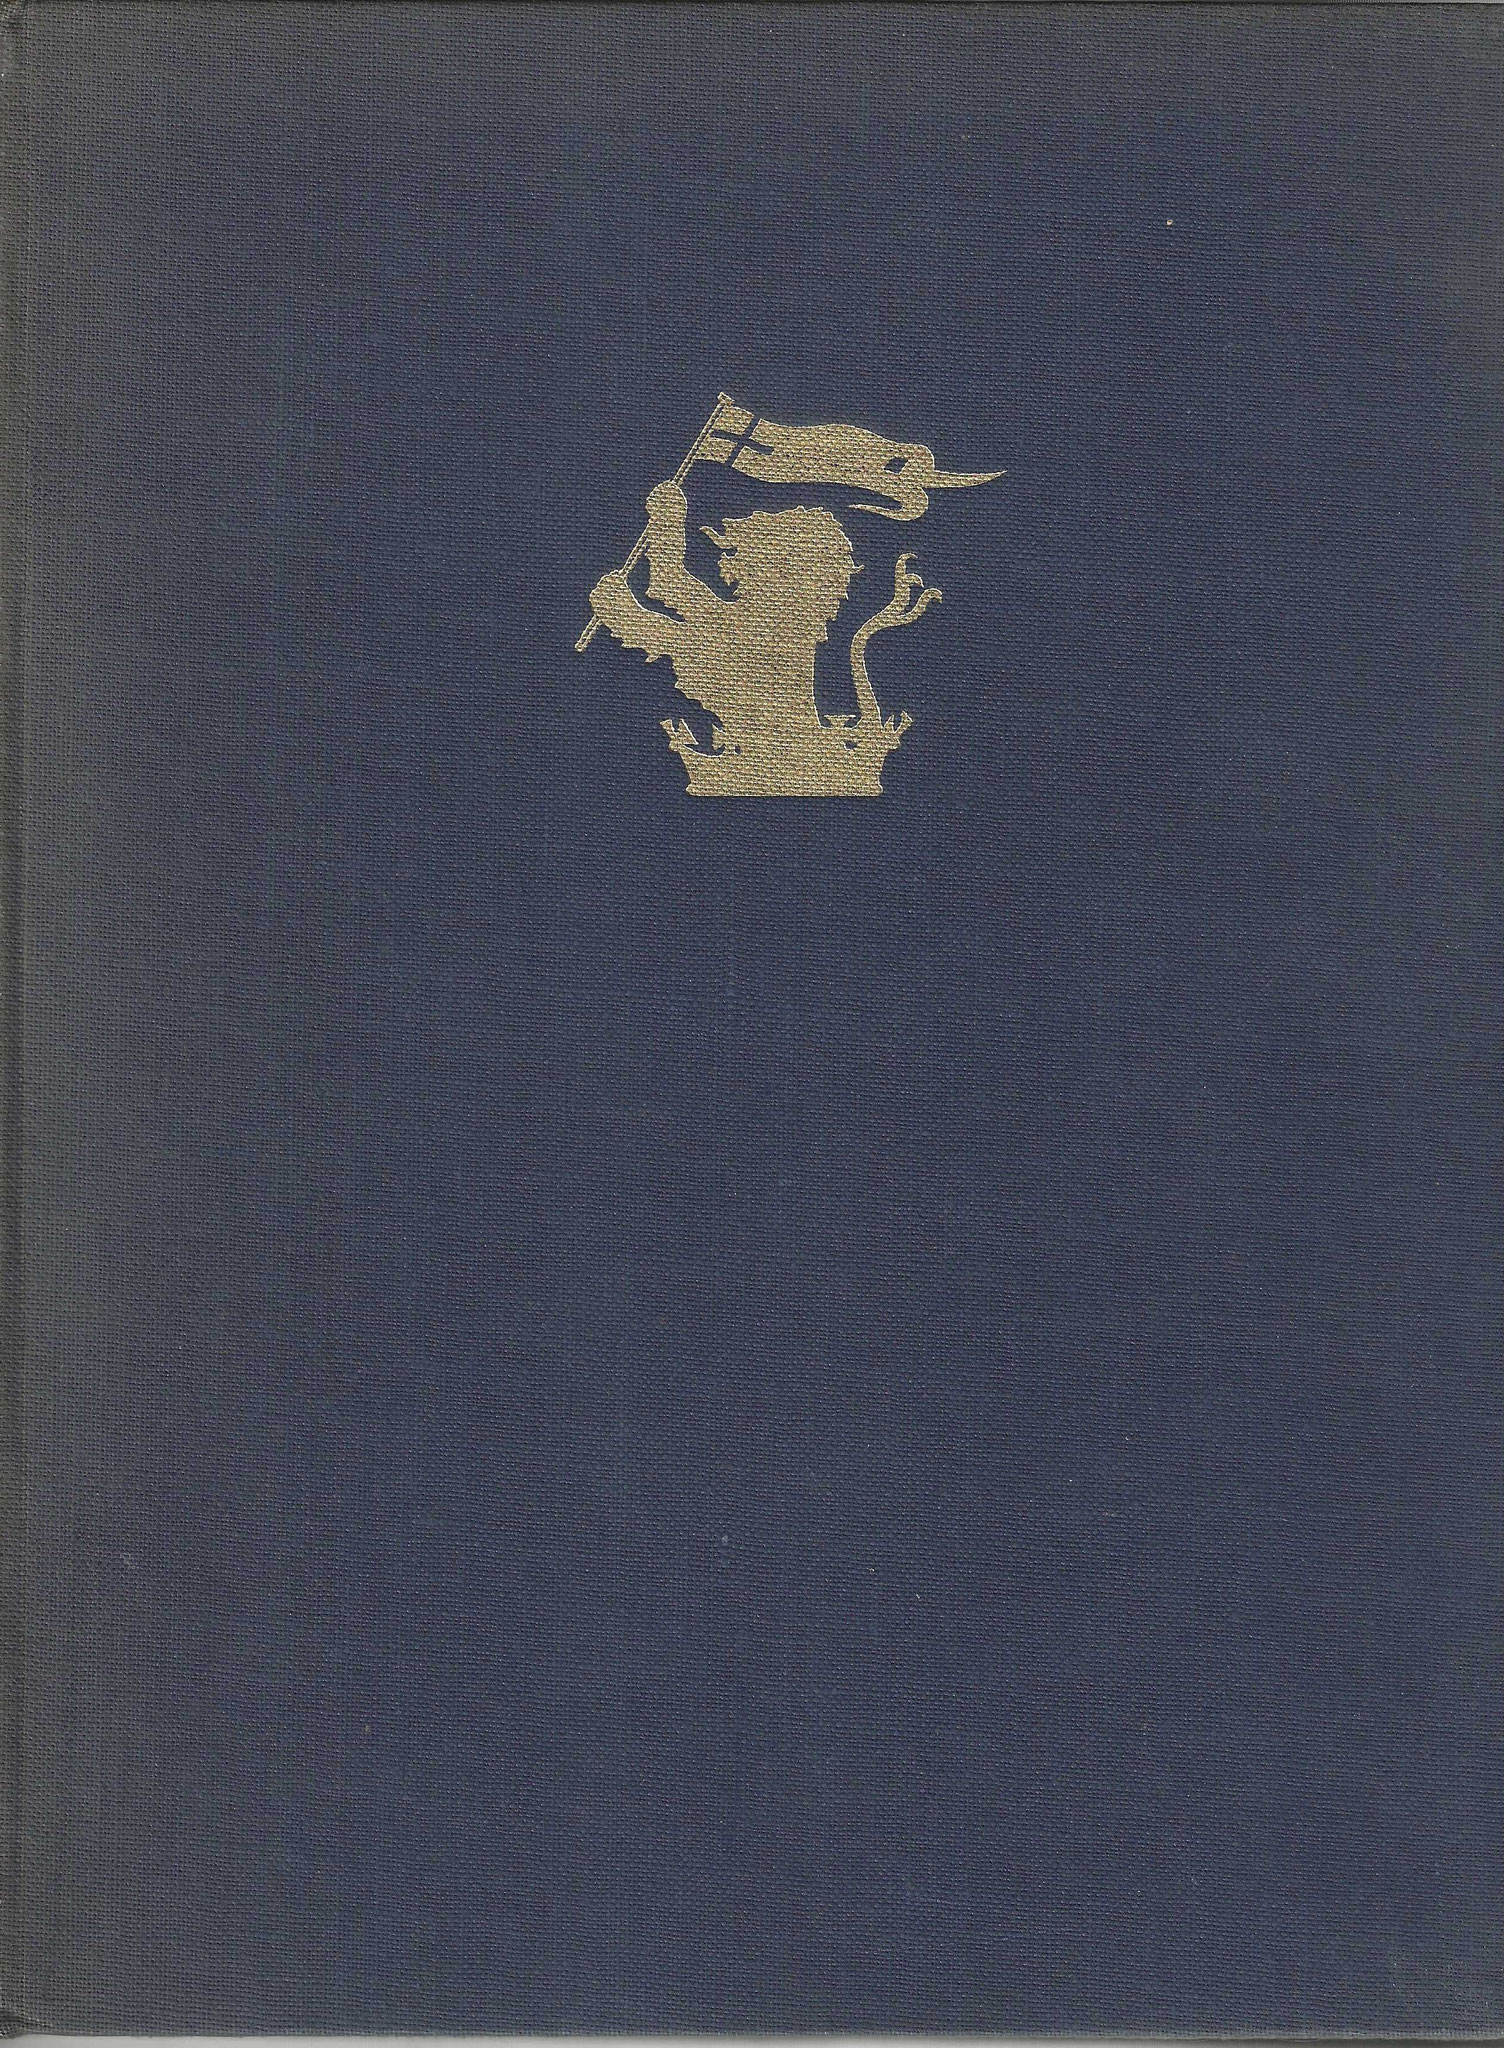 Roll of Honour 1939-1945, The Wellington ,1948 (collection P. Reinders)